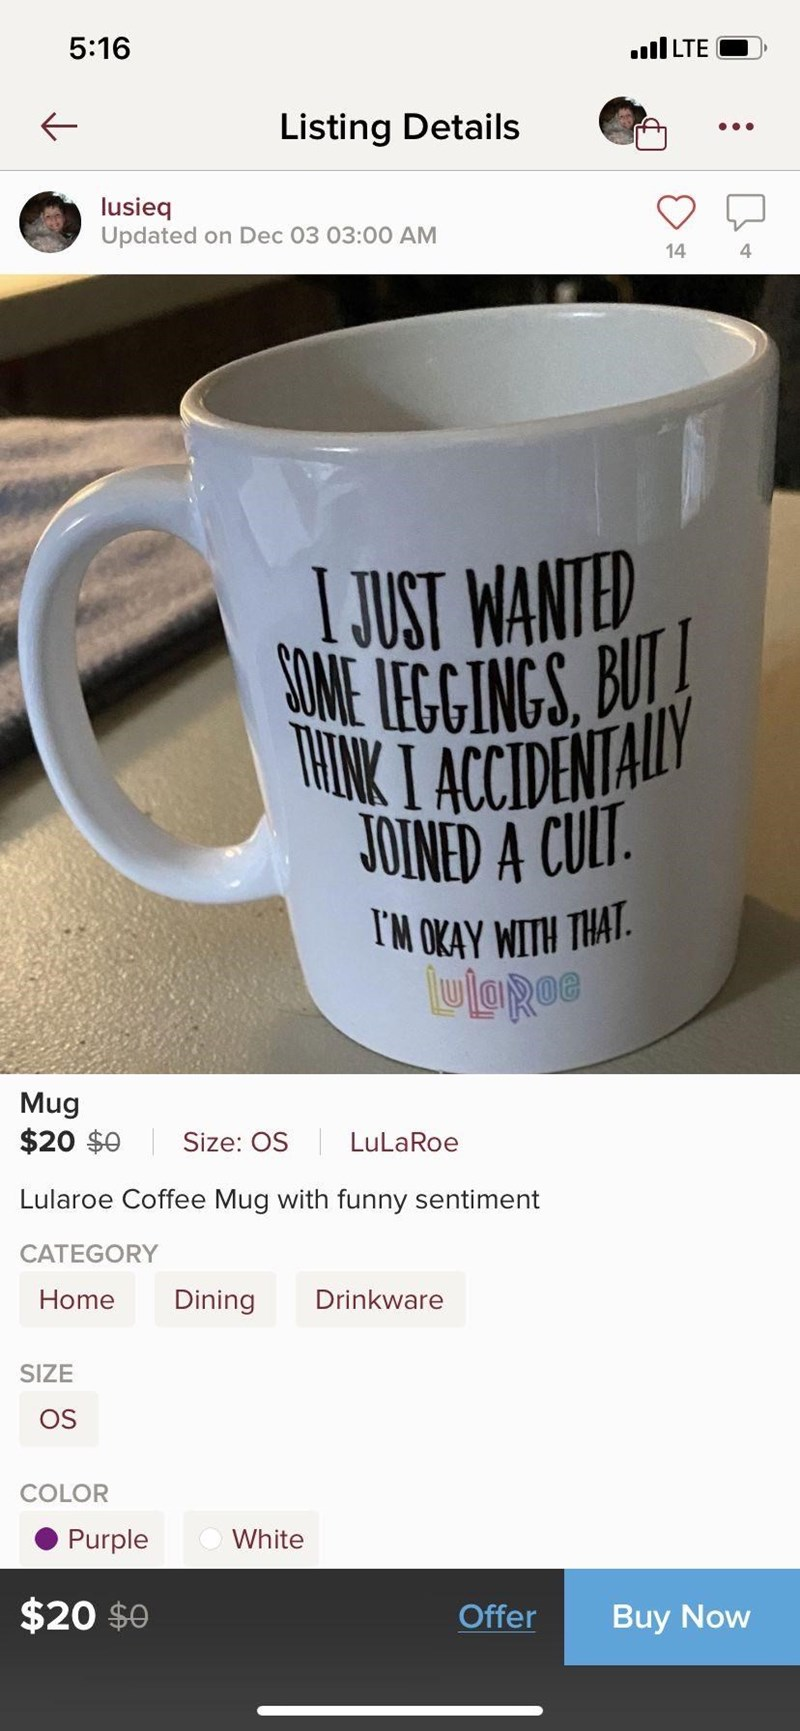 Mug - 5:16 ll LTE Listing Details lusieq Updated on Dec 03 03:00 AM 14 I JUST WANTED COME IEGGINGS, BUT! THINK I ACCIDENTALLY JOINED A CULT I'M OKAY WITH THAT. lulORoe Mug $20 $0 Size: OS LuLaRoe Lularoe Coffee Mug with funny sentiment CATEGORY Home Drinkware Dining SIZE OS COLOR Purple White $20 $0 Offer Buy Now